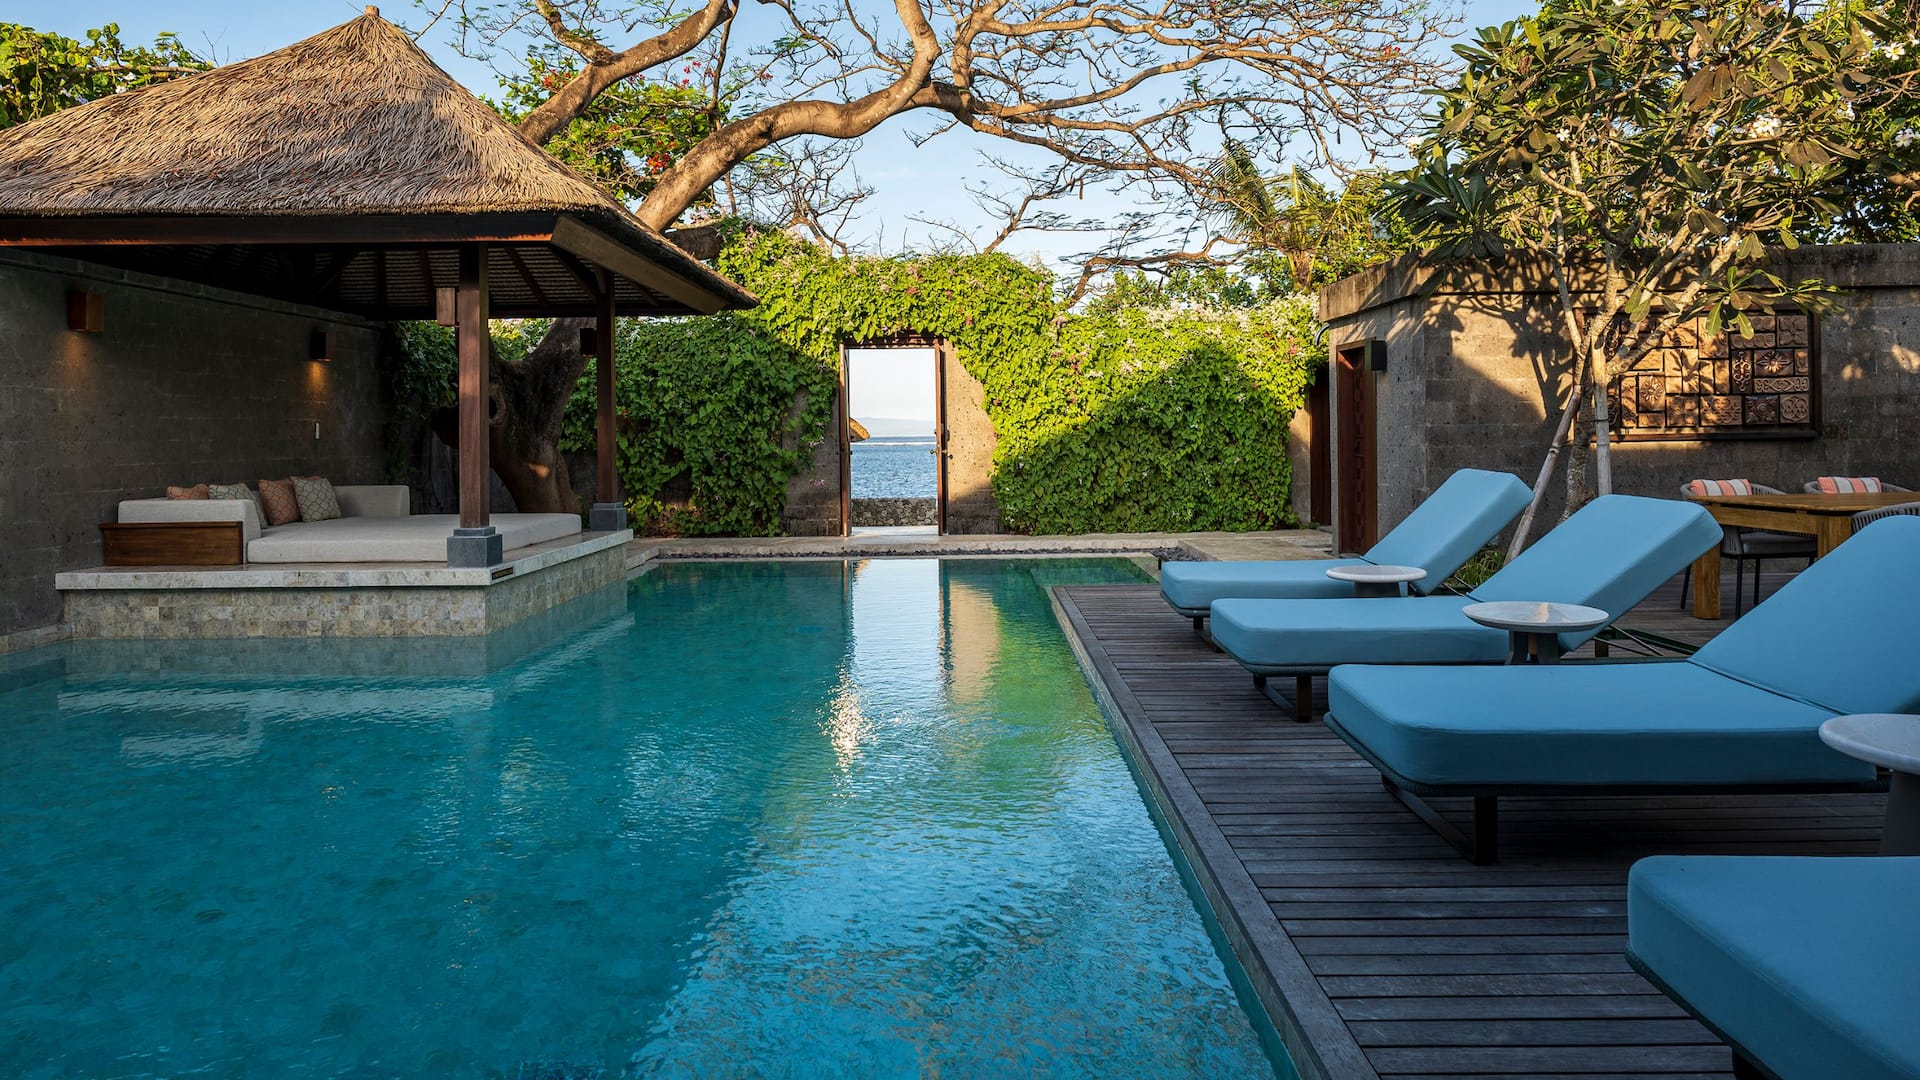 Andaz Bali Hotel Offers, Packages and Room Discounts